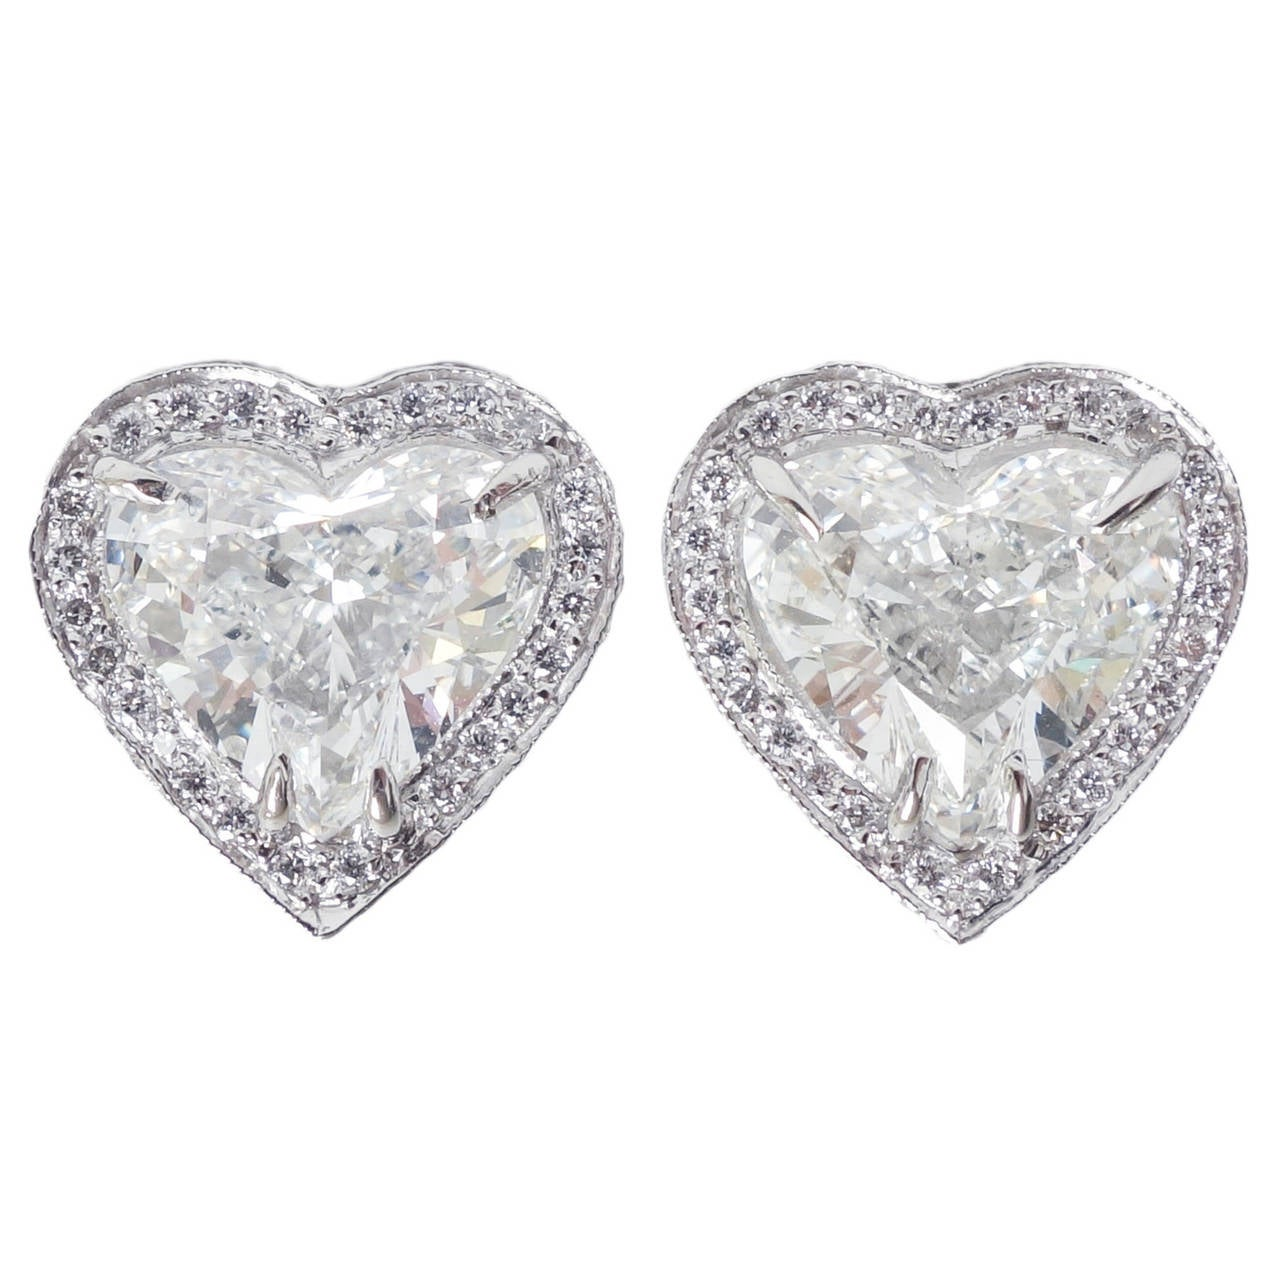 crop hearts product false jewellery co rose the at diamond shop editor heart shot shaped tiffany screen upscale stud with studs scale diamonds subsampling in gold